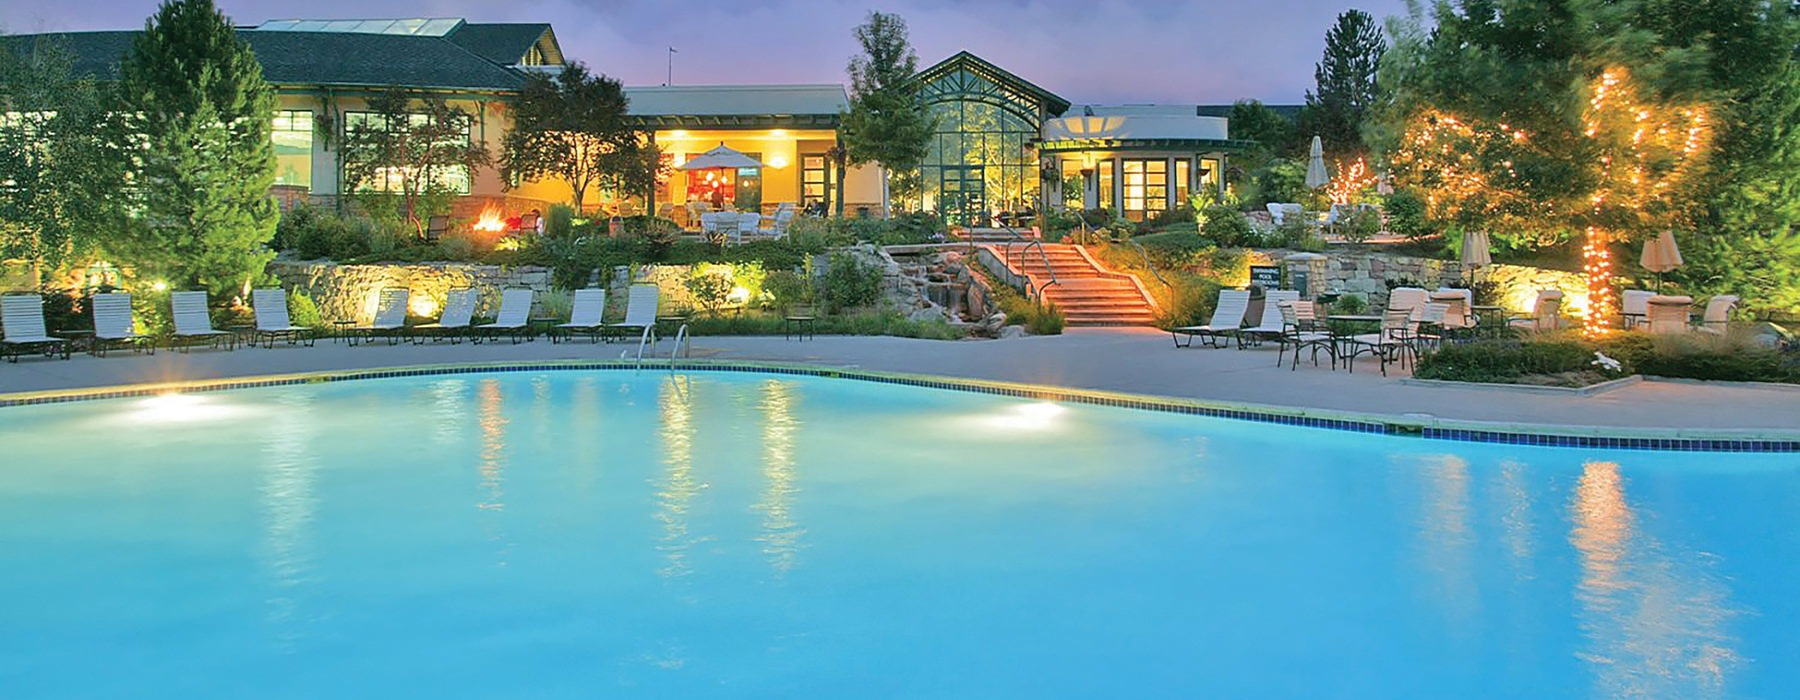 Large sparkling pool with the Palomino Park clubhouse in the back at night.